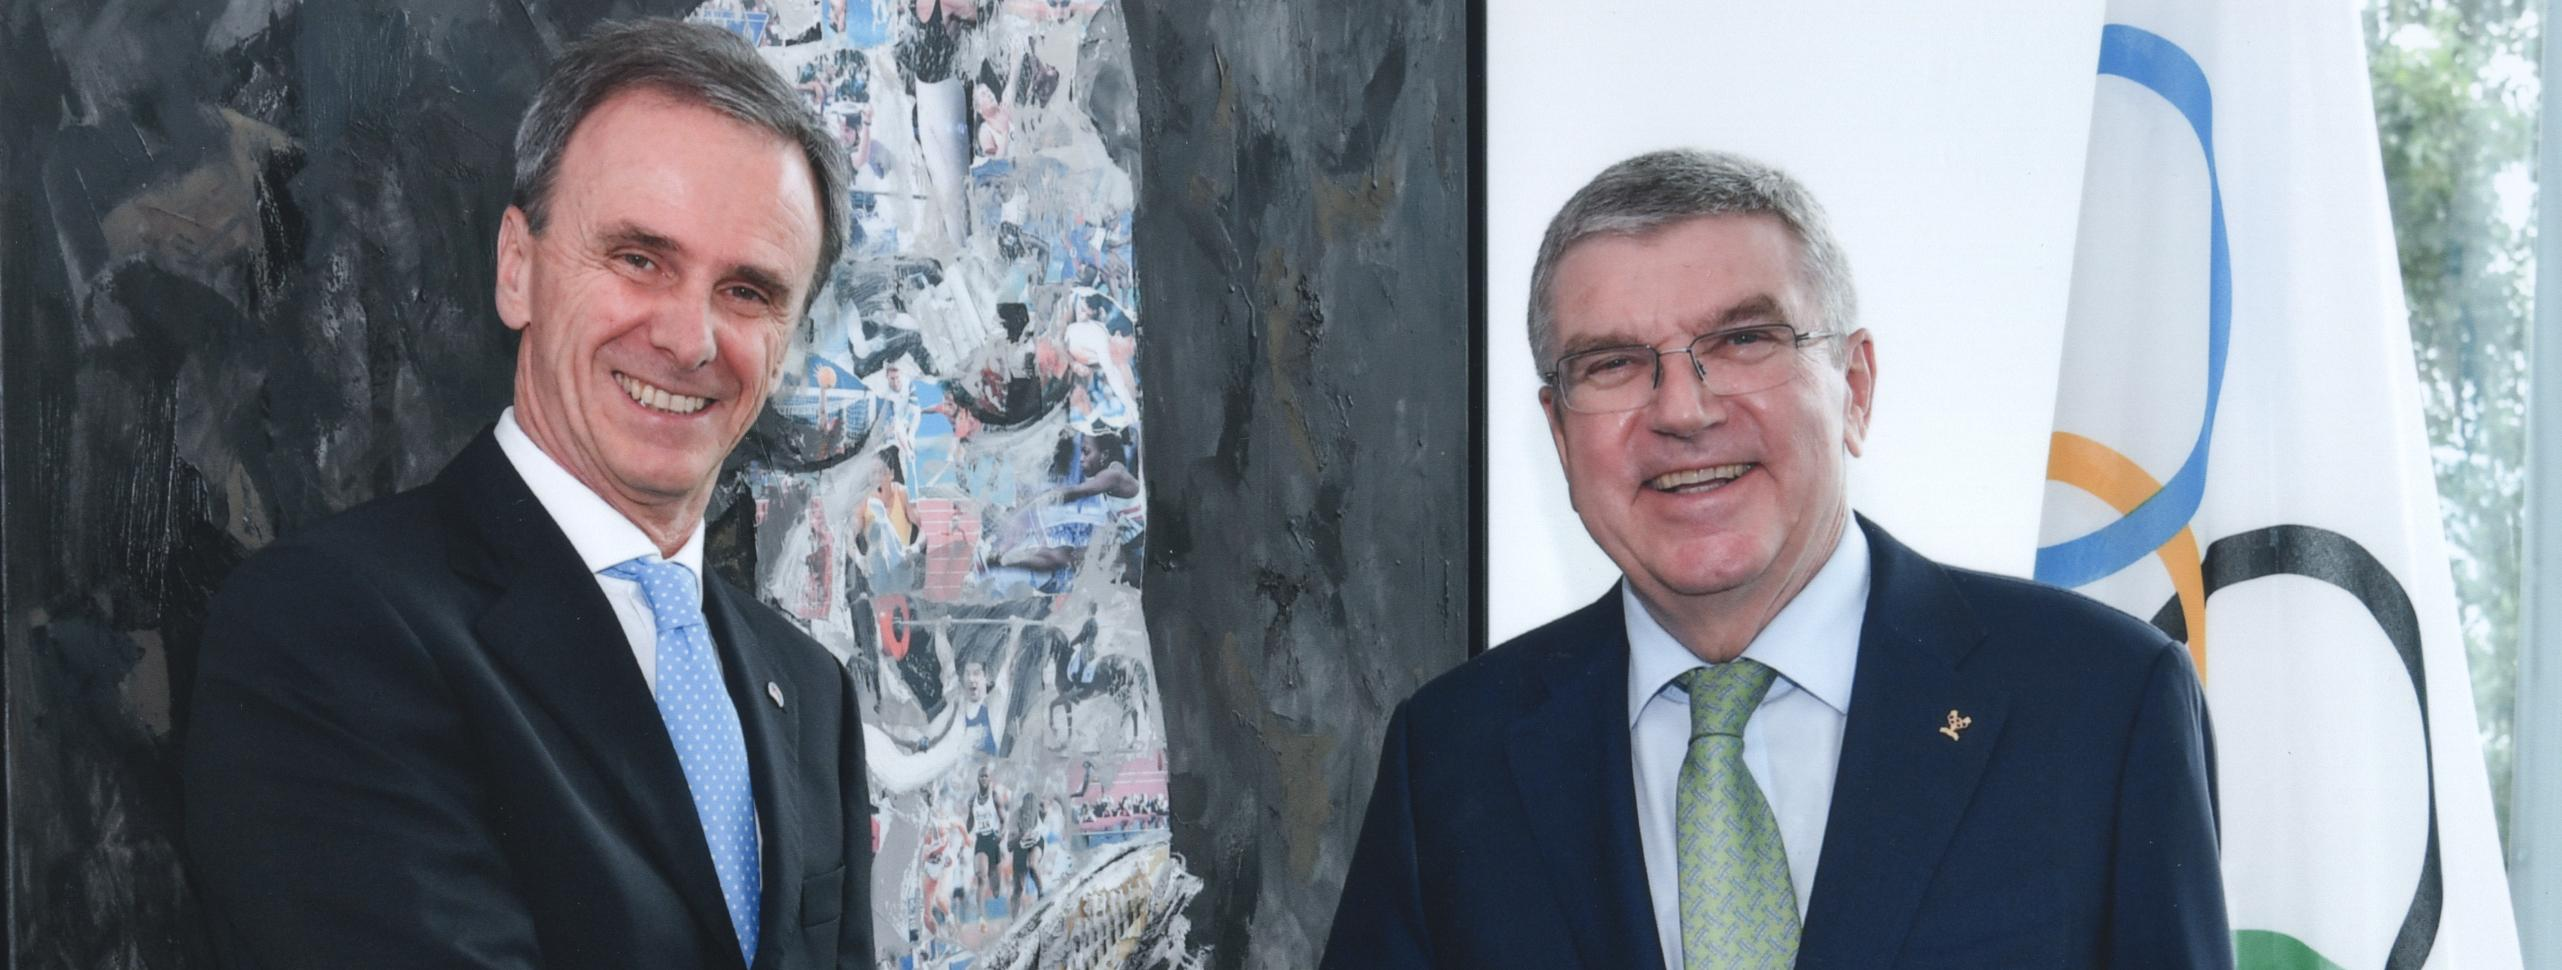 IFSC PRESIDENT MARCO SCOLARIS CONGRATULATES THOMAS BACH ON BEING RE-ELECTED IOC PRESIDENT